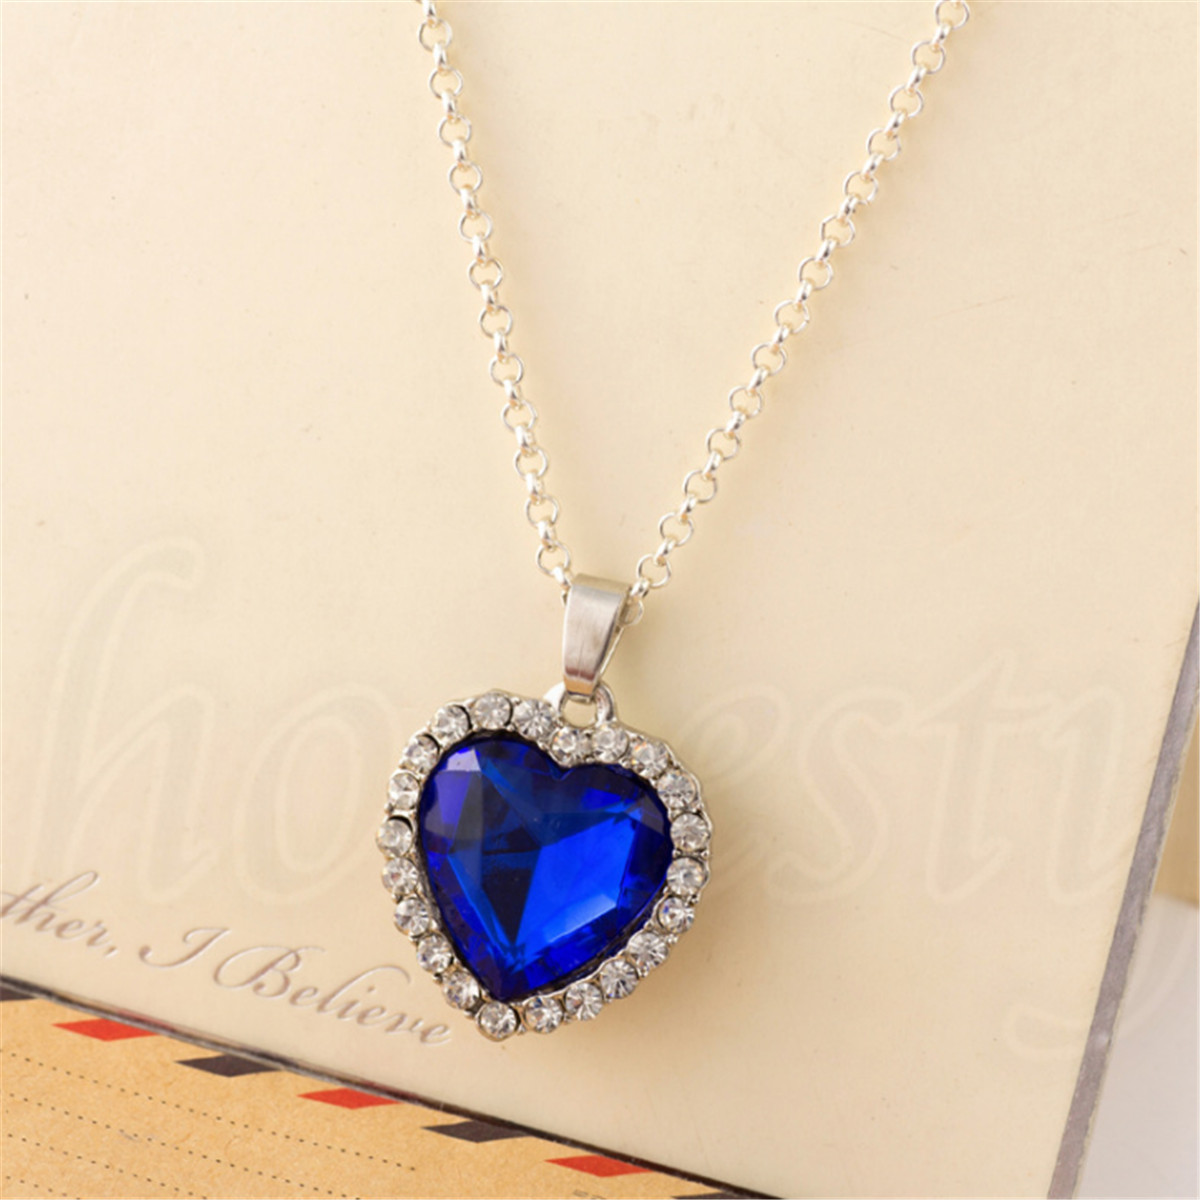 Titanic pendant necklace crystal silver necklace sapphire blue titanic pendant necklace crystal silver necklace sapphire blue heart of ocean aloadofball Image collections